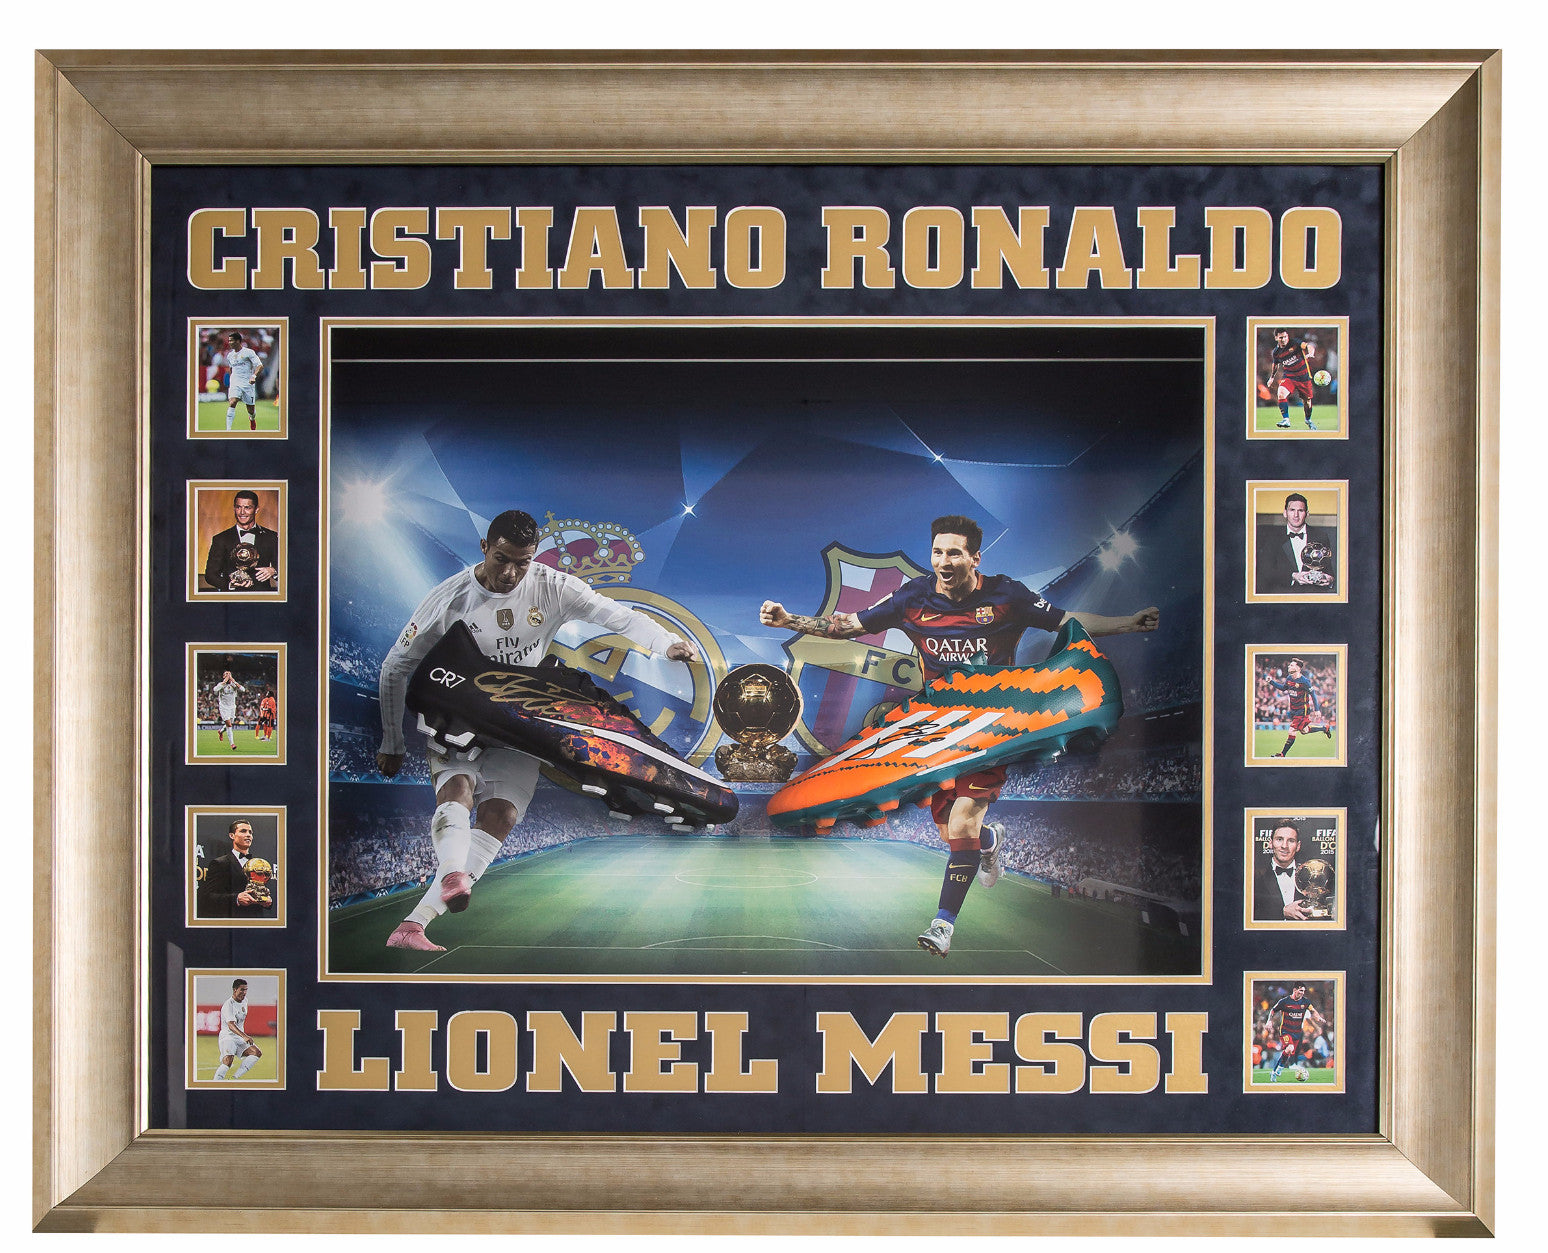 Lionel Messi and Cristiano Ronaldo Hand Signed Football Boots - Barcelona - Real Madrid - Premium Framed